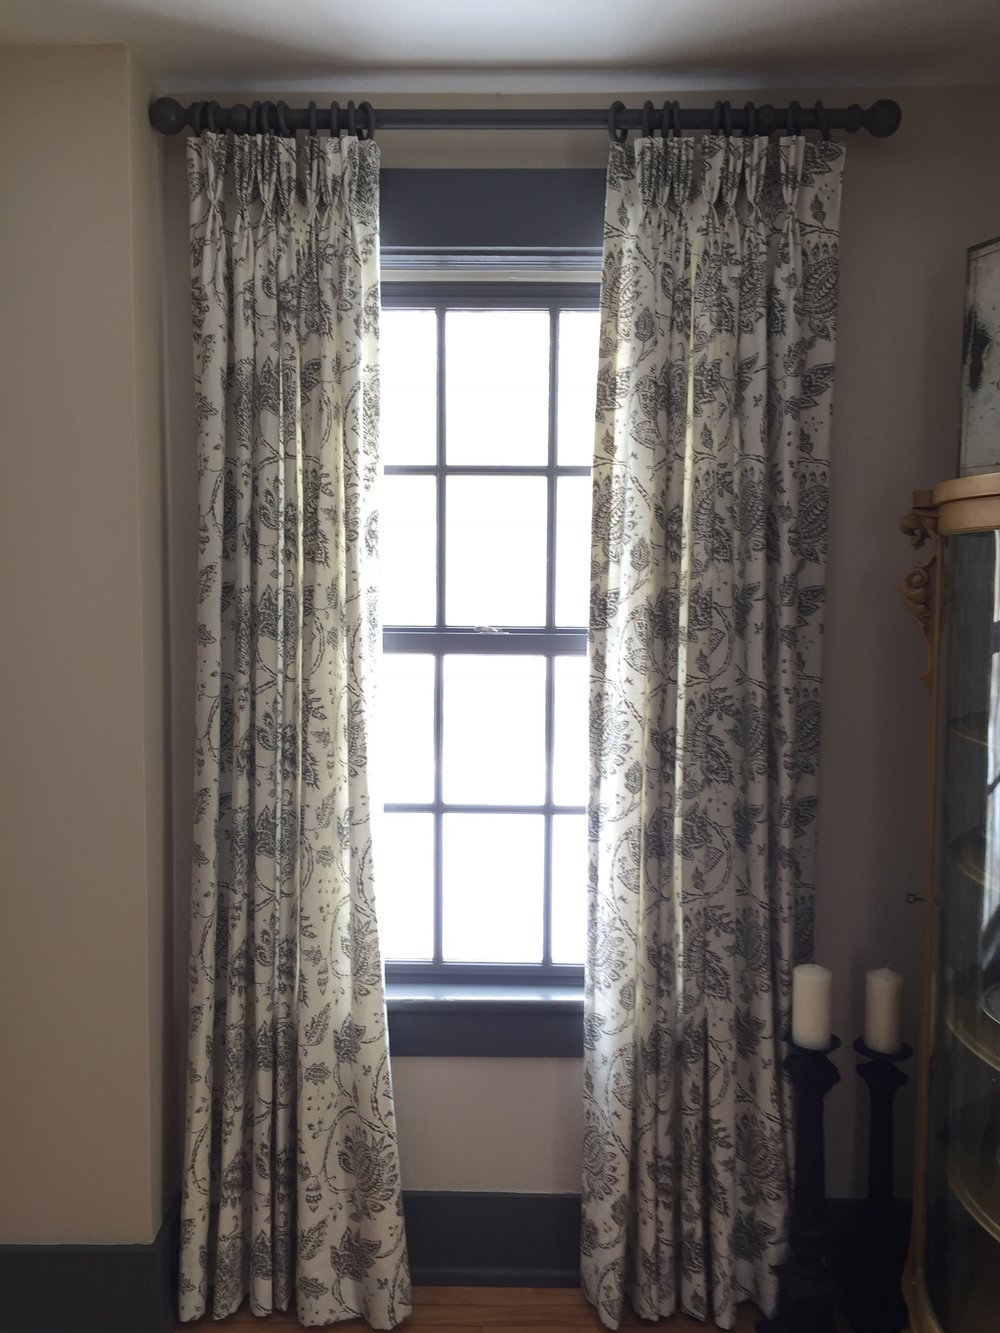 These cotton linen panels are made from a  Kravet  fabric with pinch pleats.  They are in a dining room and help to muffle sound.  The drapery rod and rings were painted the color of the trim ( Benjamin Moore  Kendall Charcoal) which is a close match to the grey in the fabric.